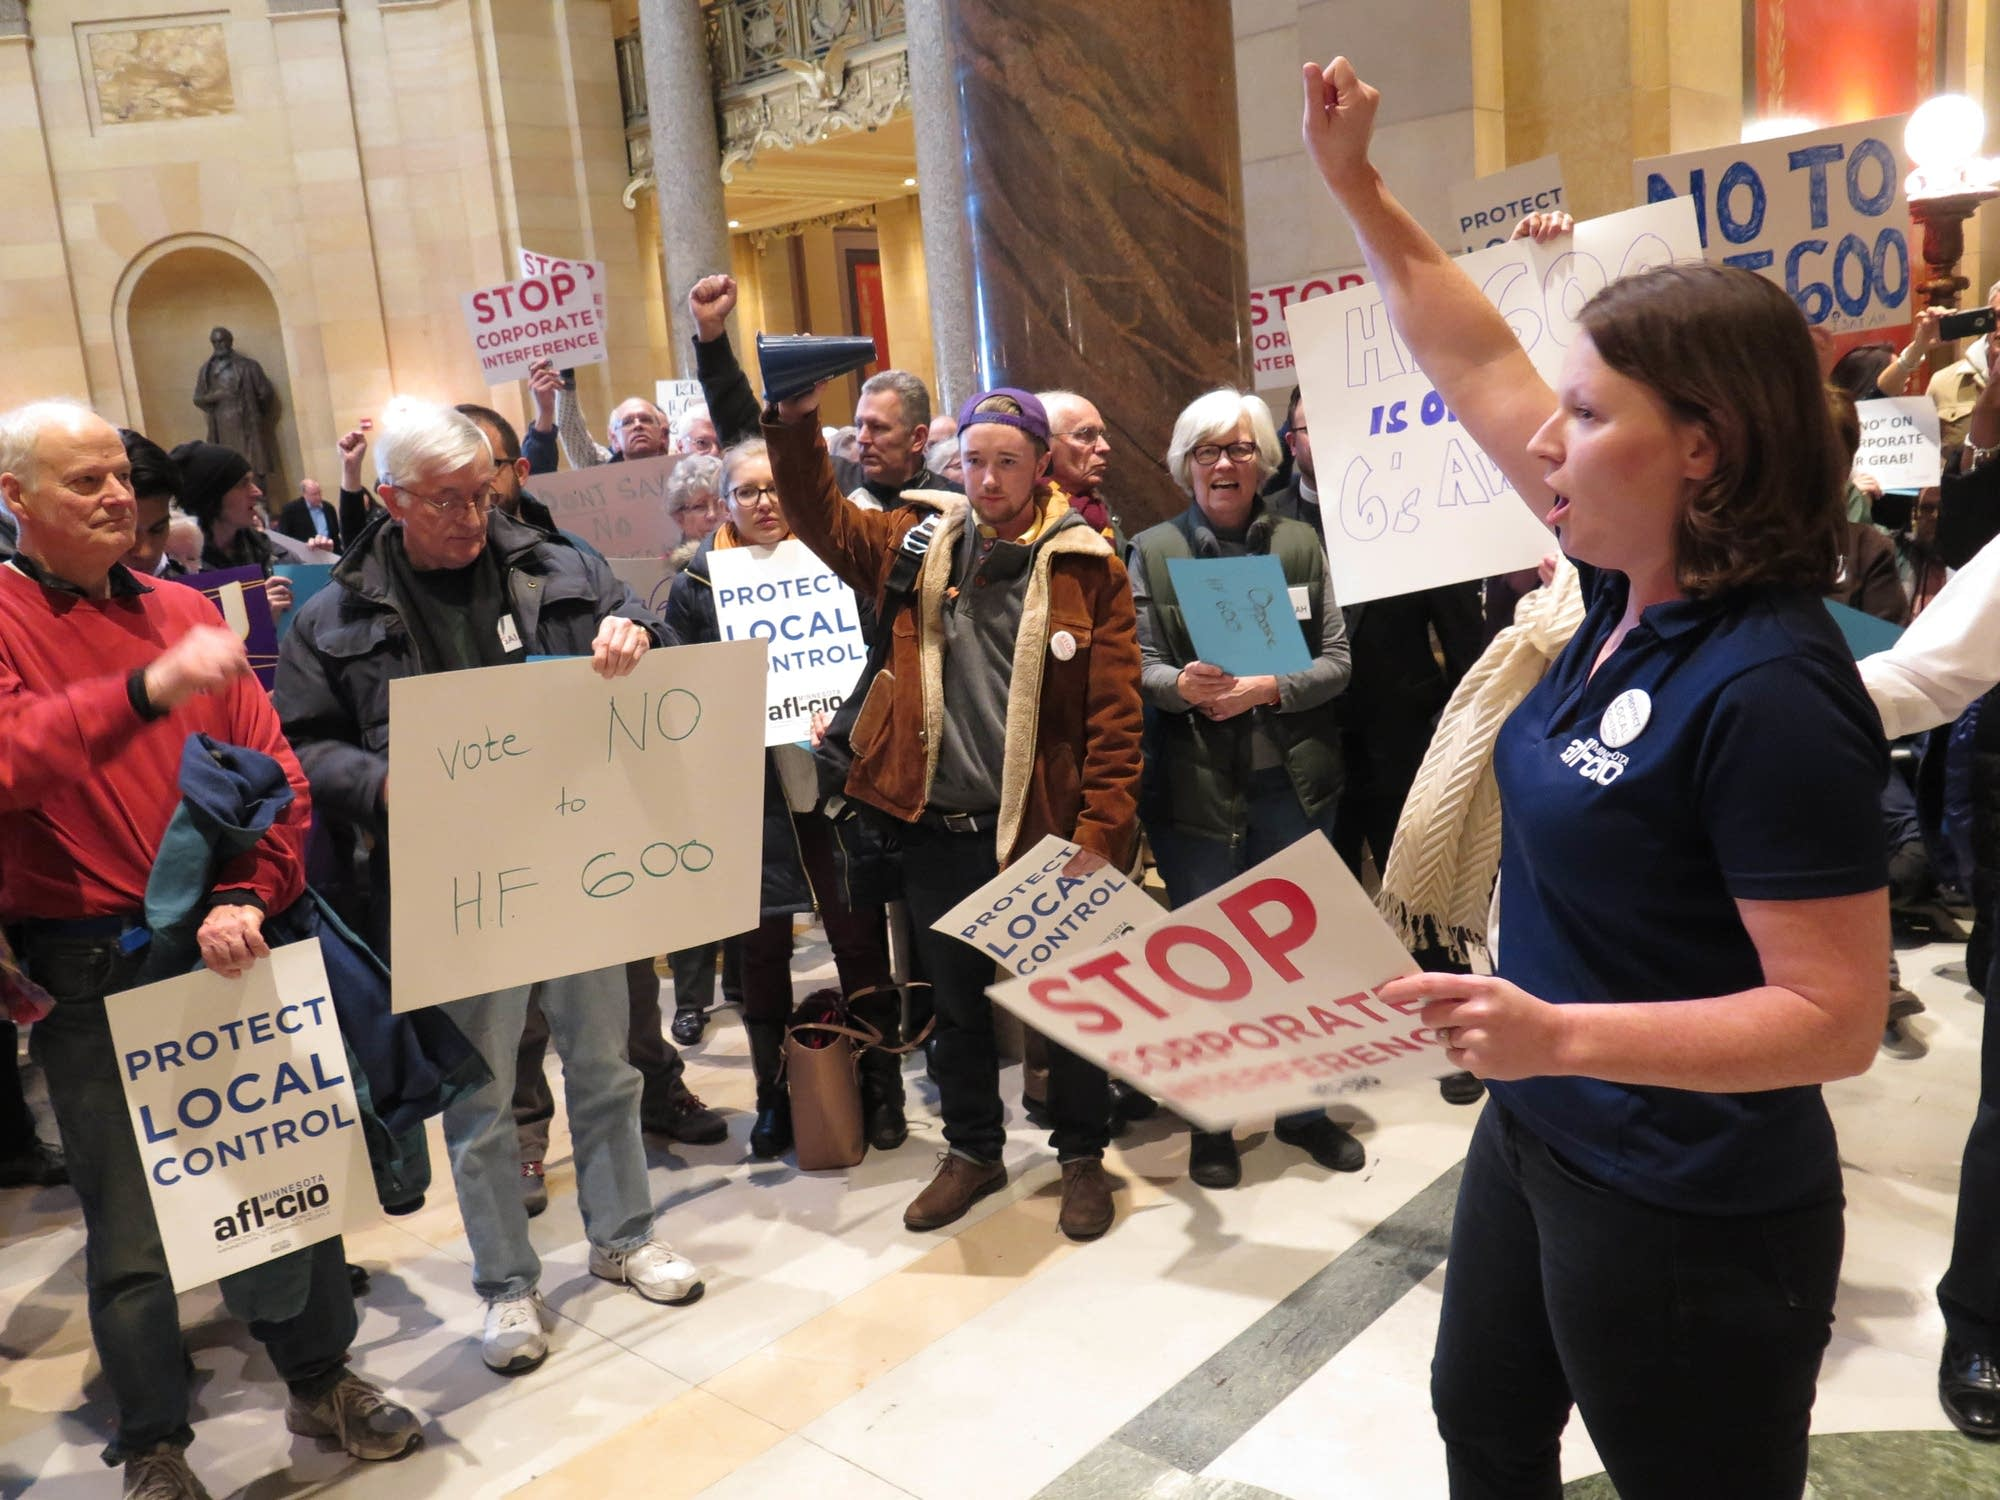 Minnesota AFL-CIO field director Bethany Winkels led chants